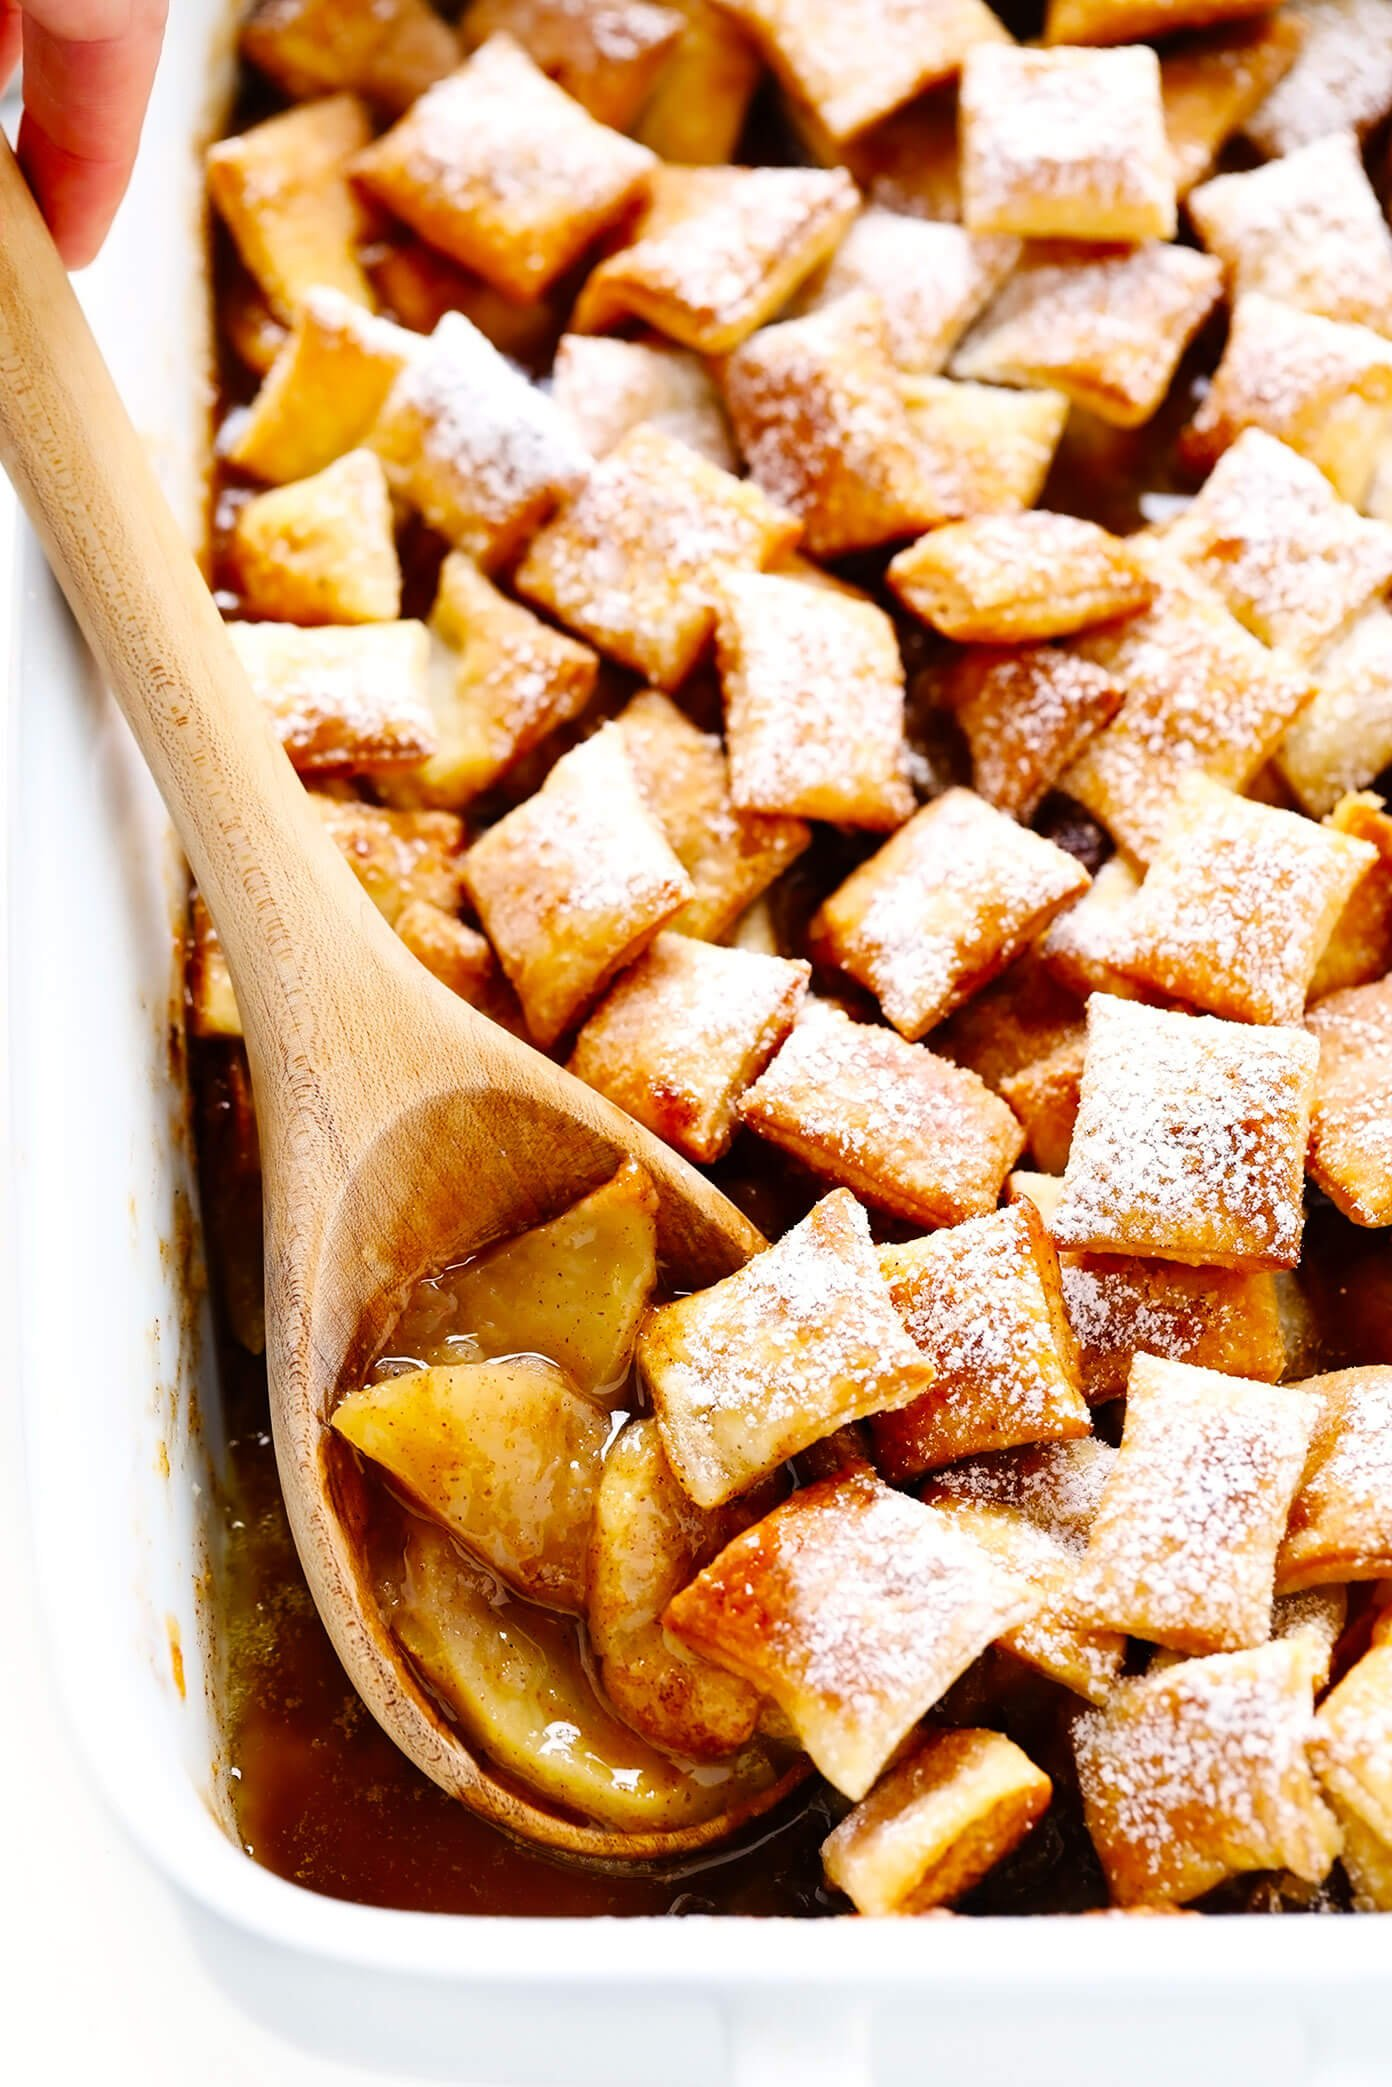 Apple Pandowdy with Puff Pastry